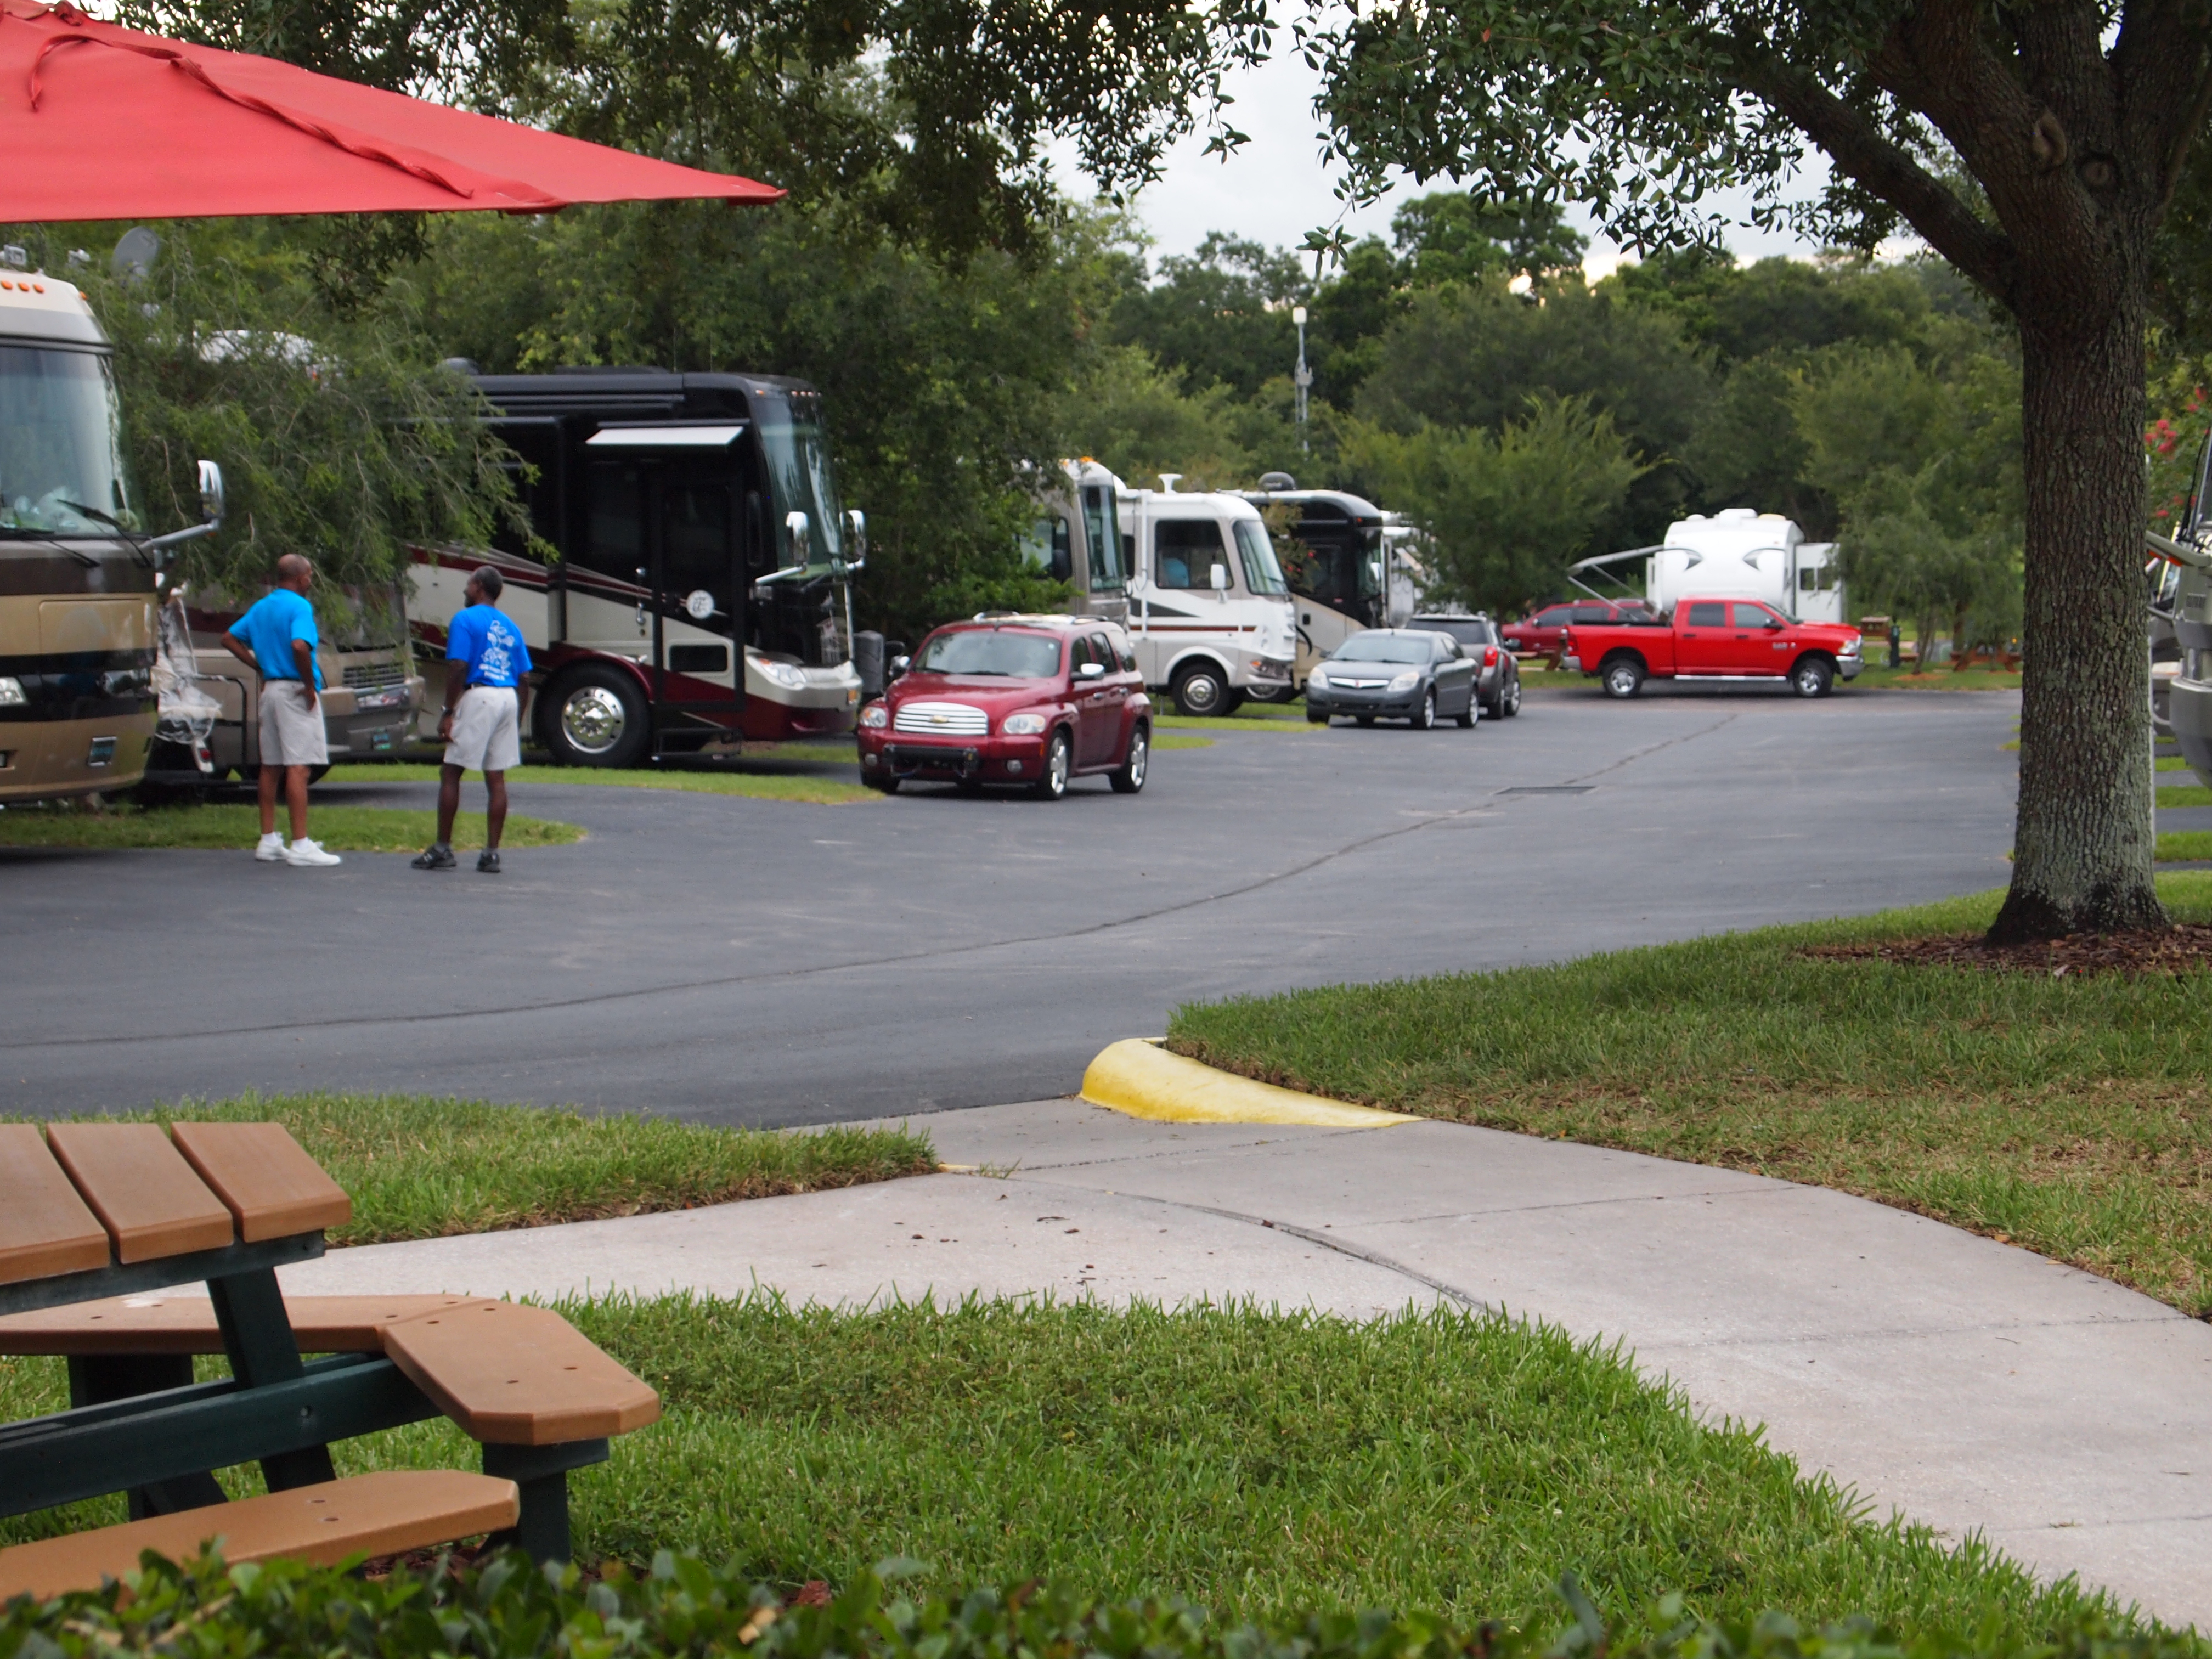 Relax And Recharge At Lazydays Rv Resort Aka Rally Park